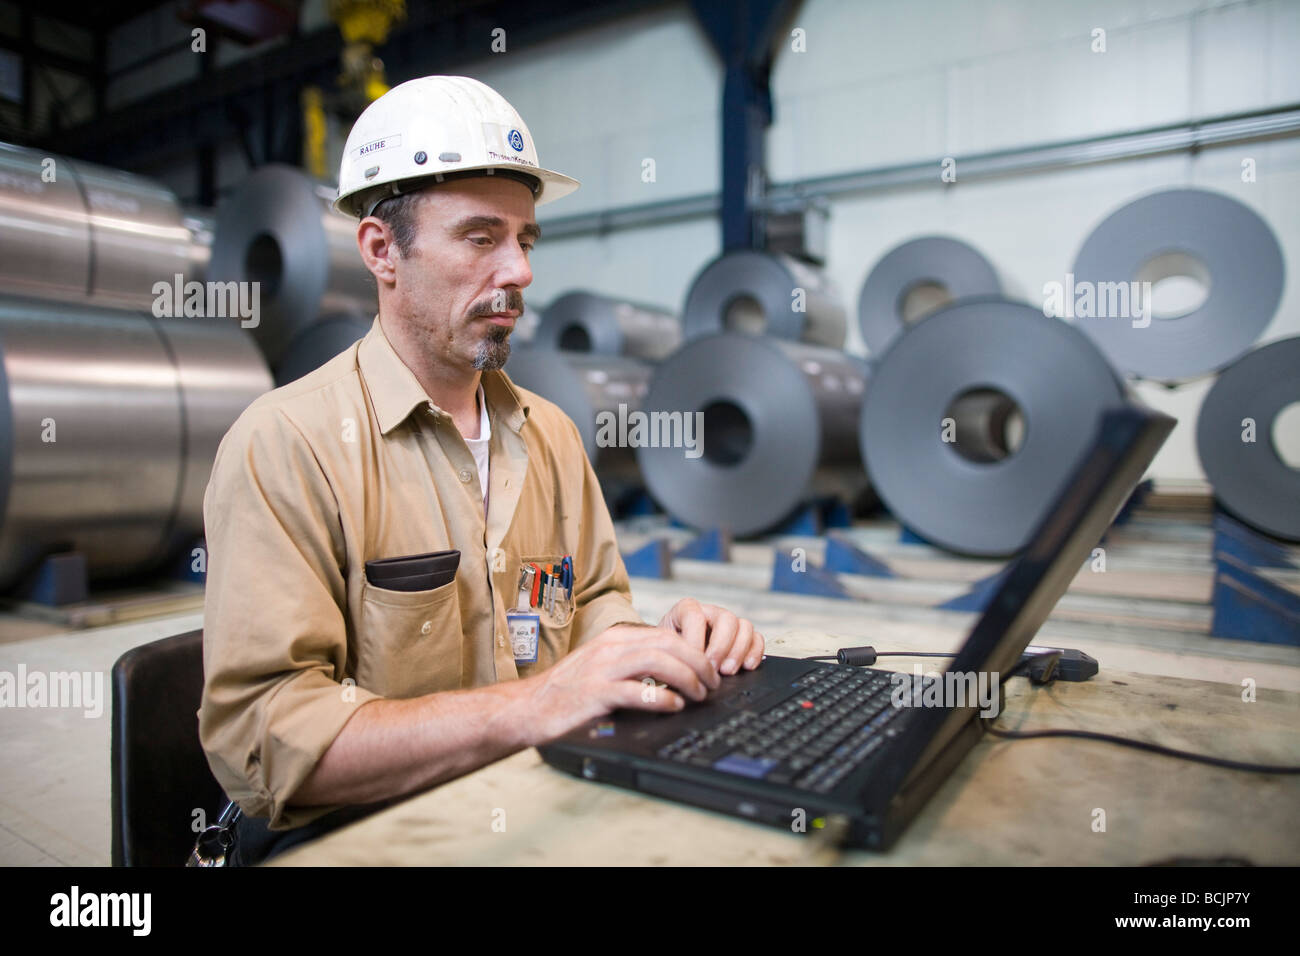 Worker at steel coil bracket - Stock Image